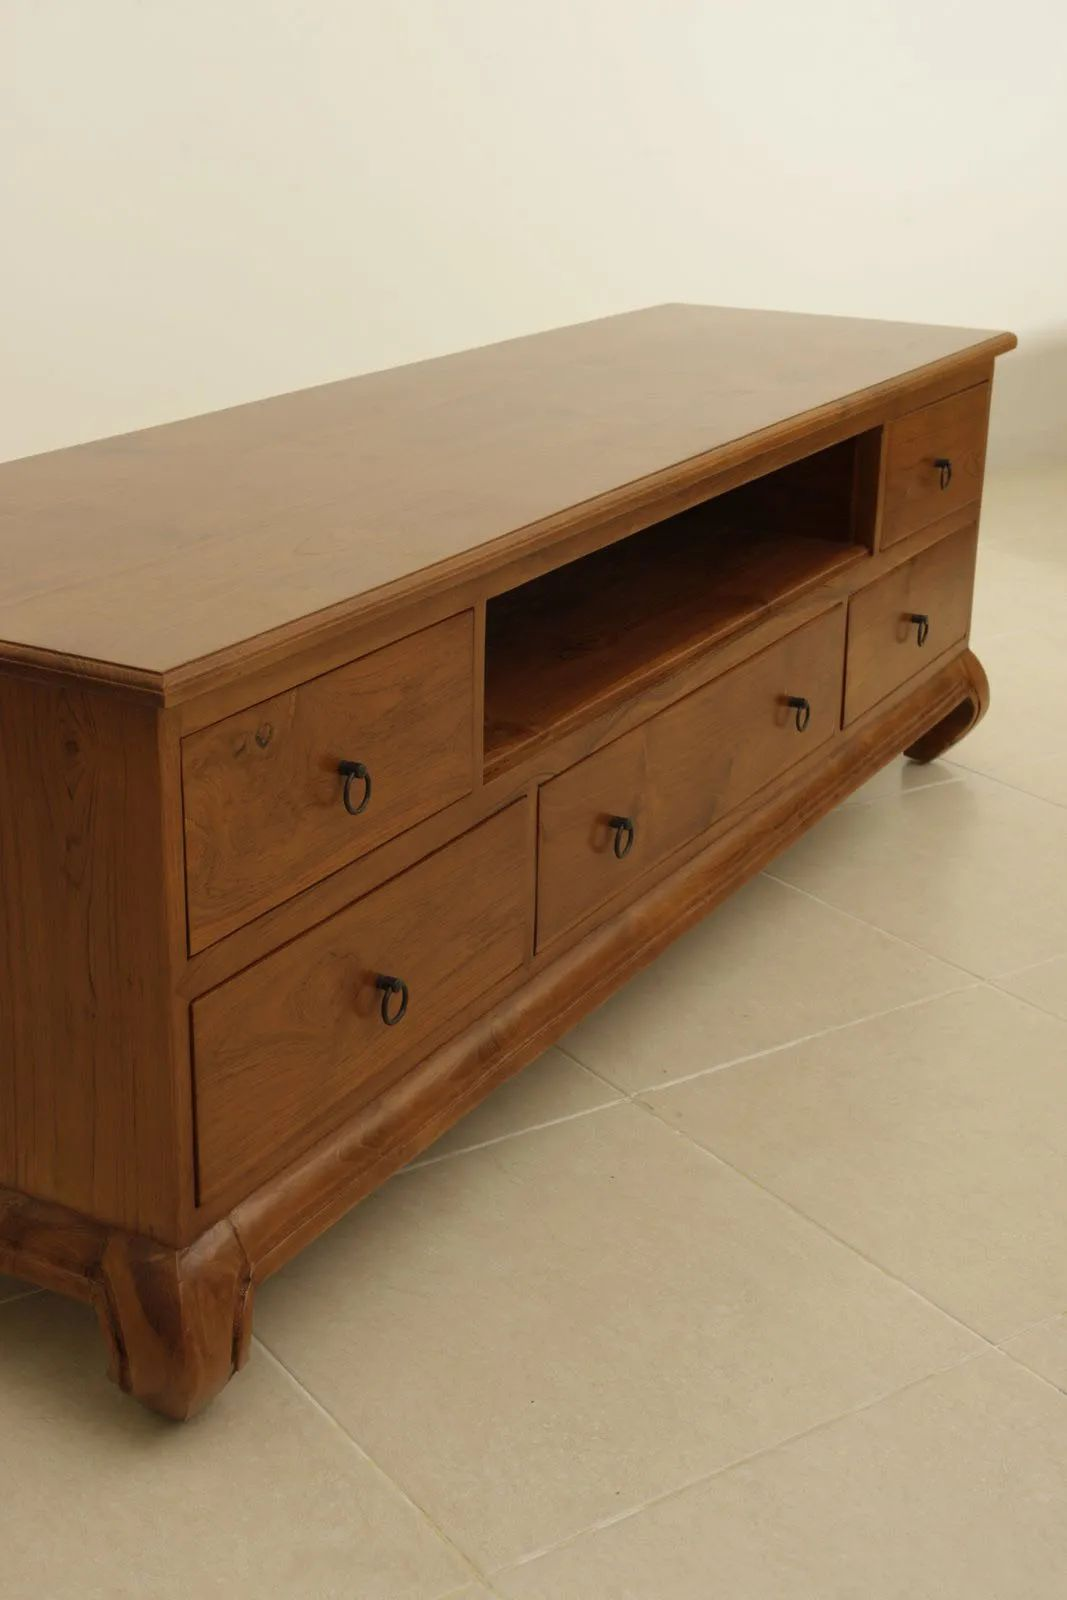 Plain solid wood top of the Opium tv stand